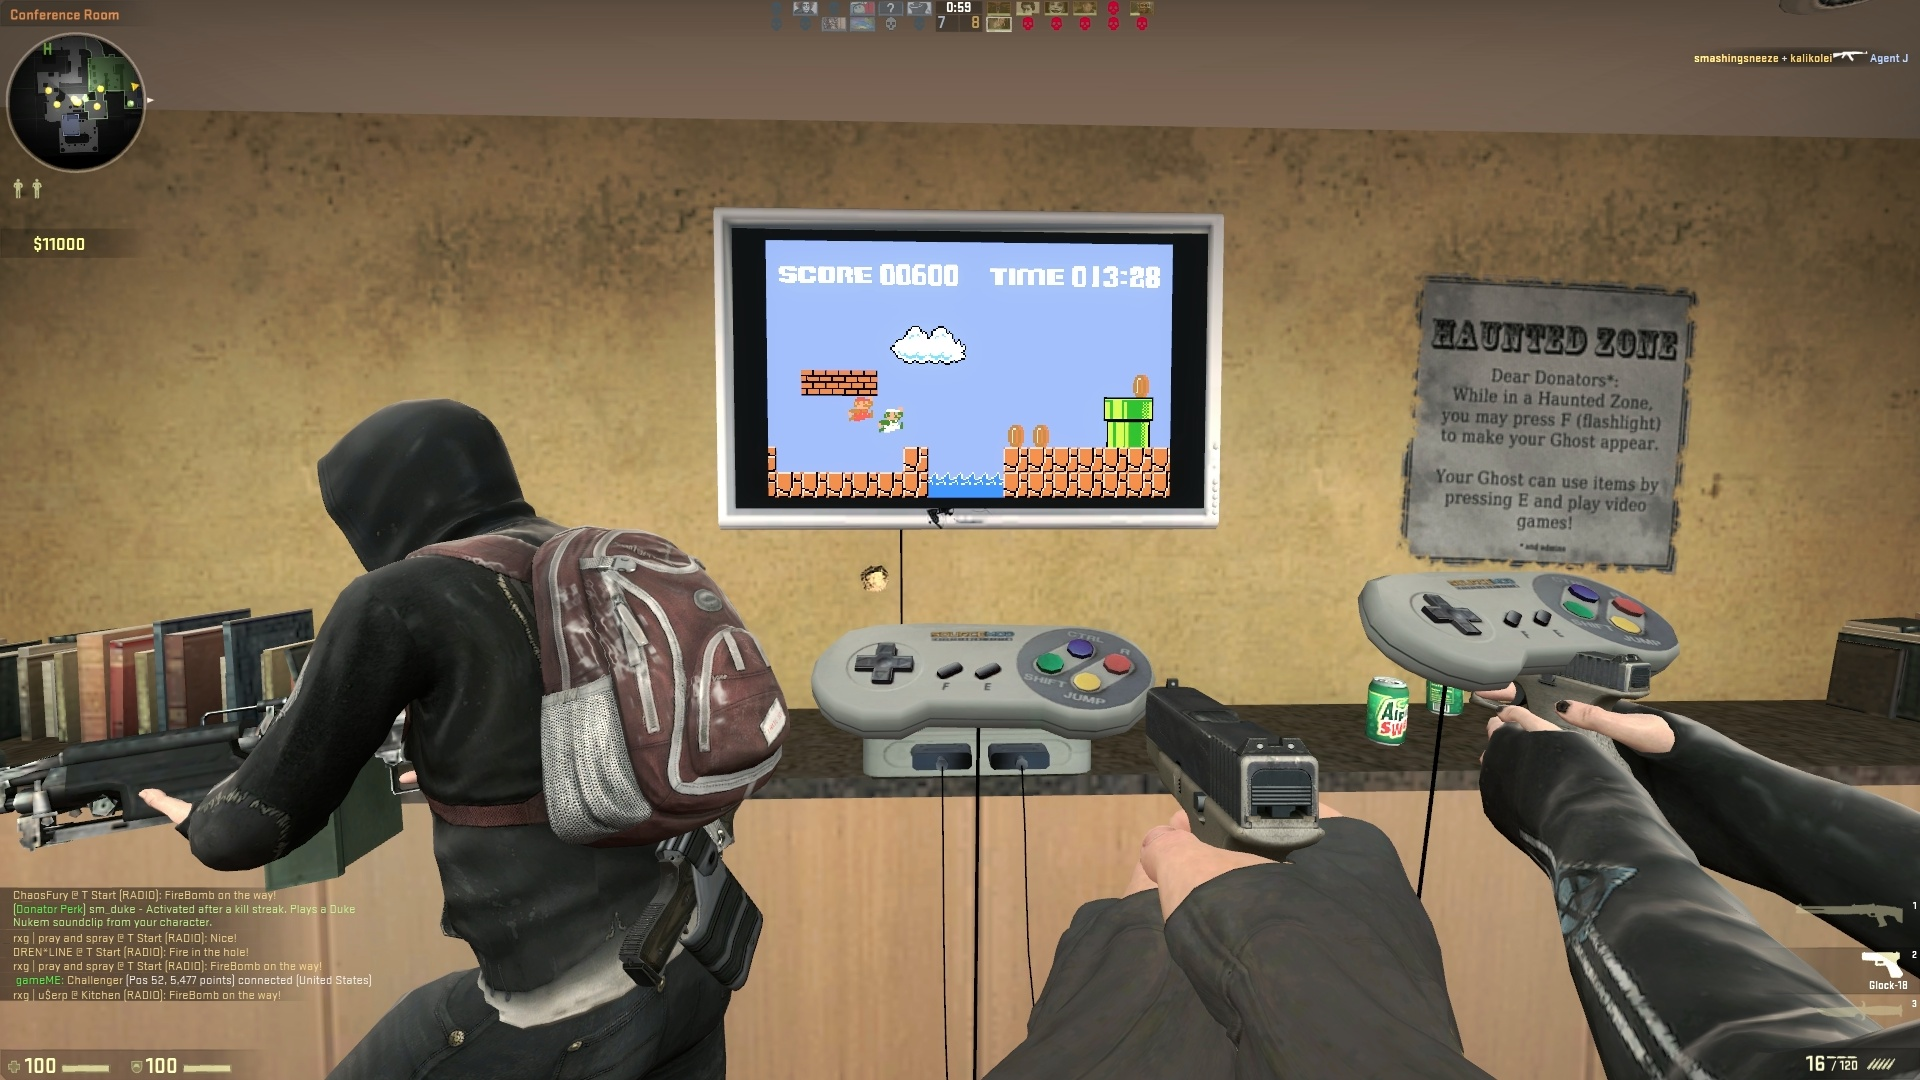 Playable Console With Super Mareo Bruhs Modded Into Csgo Server